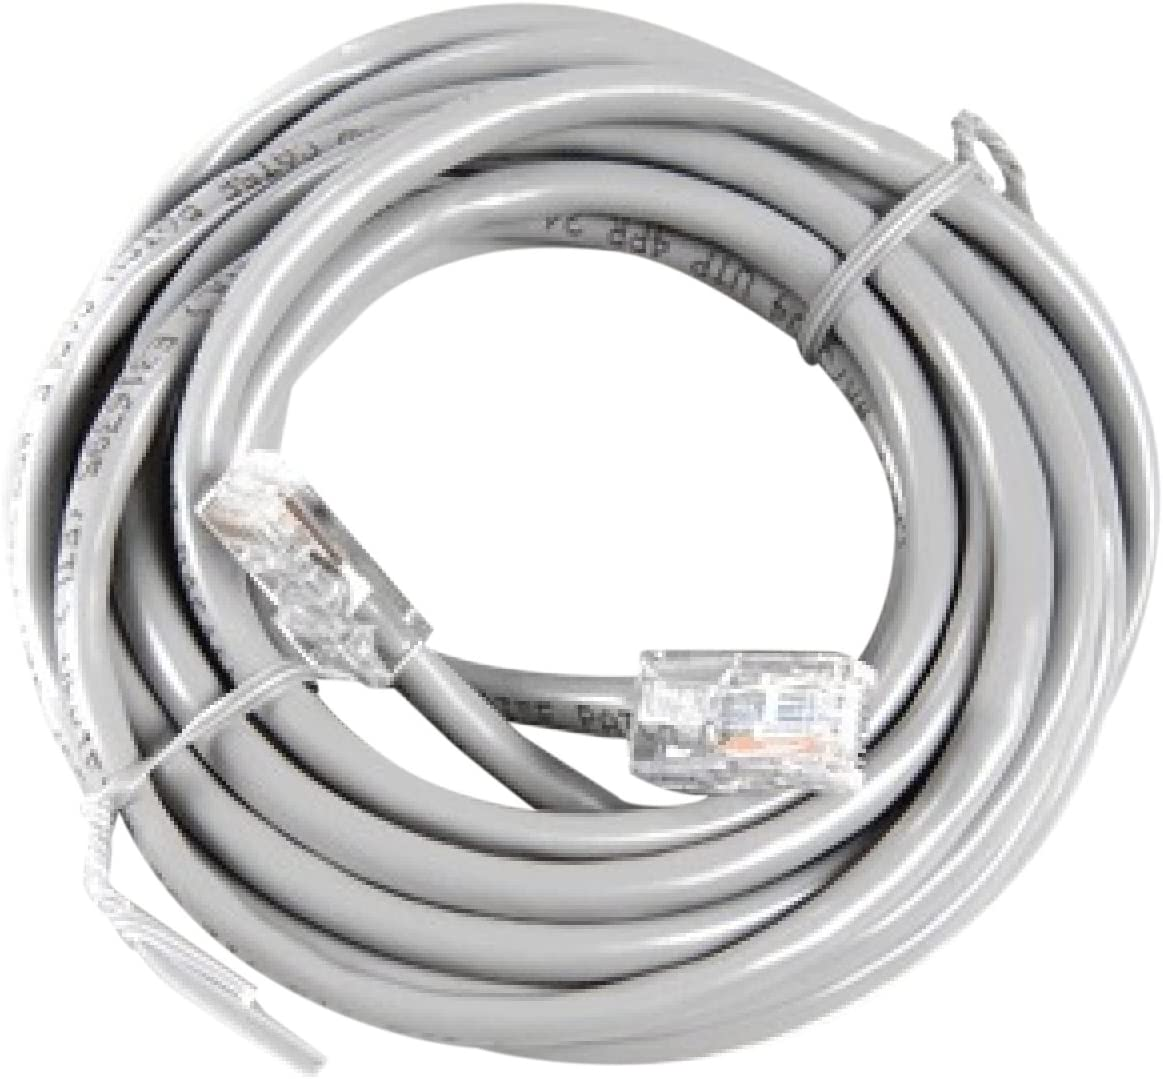 XANTREX 808-9010 TELEPHONE TO NETWORK CABLE ADAPTER